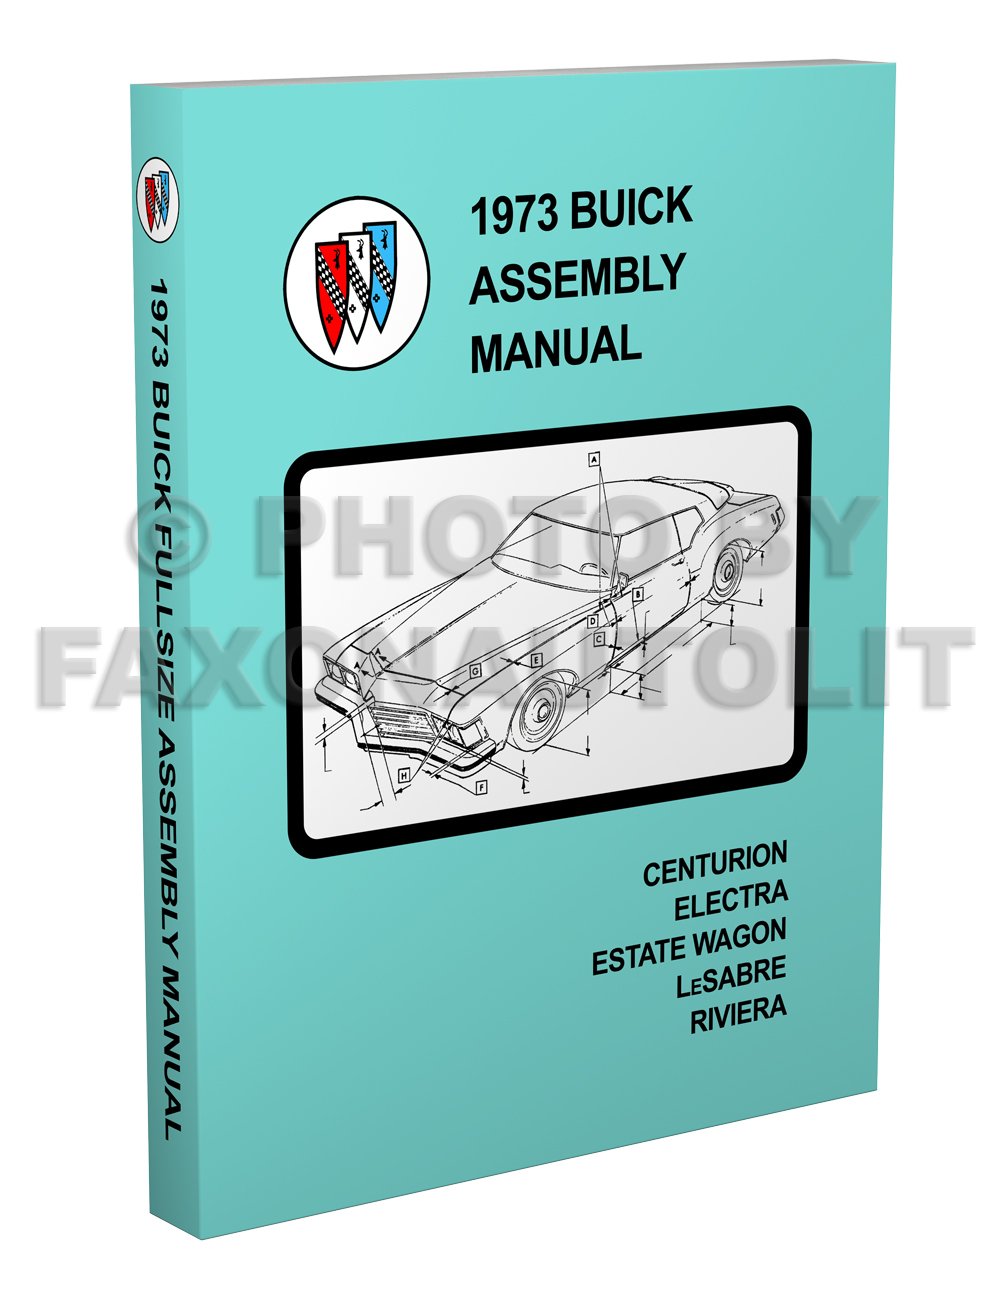 1973 Buick Factory Assembly Manual Reprint Riviera LeSabre Electra Centurion